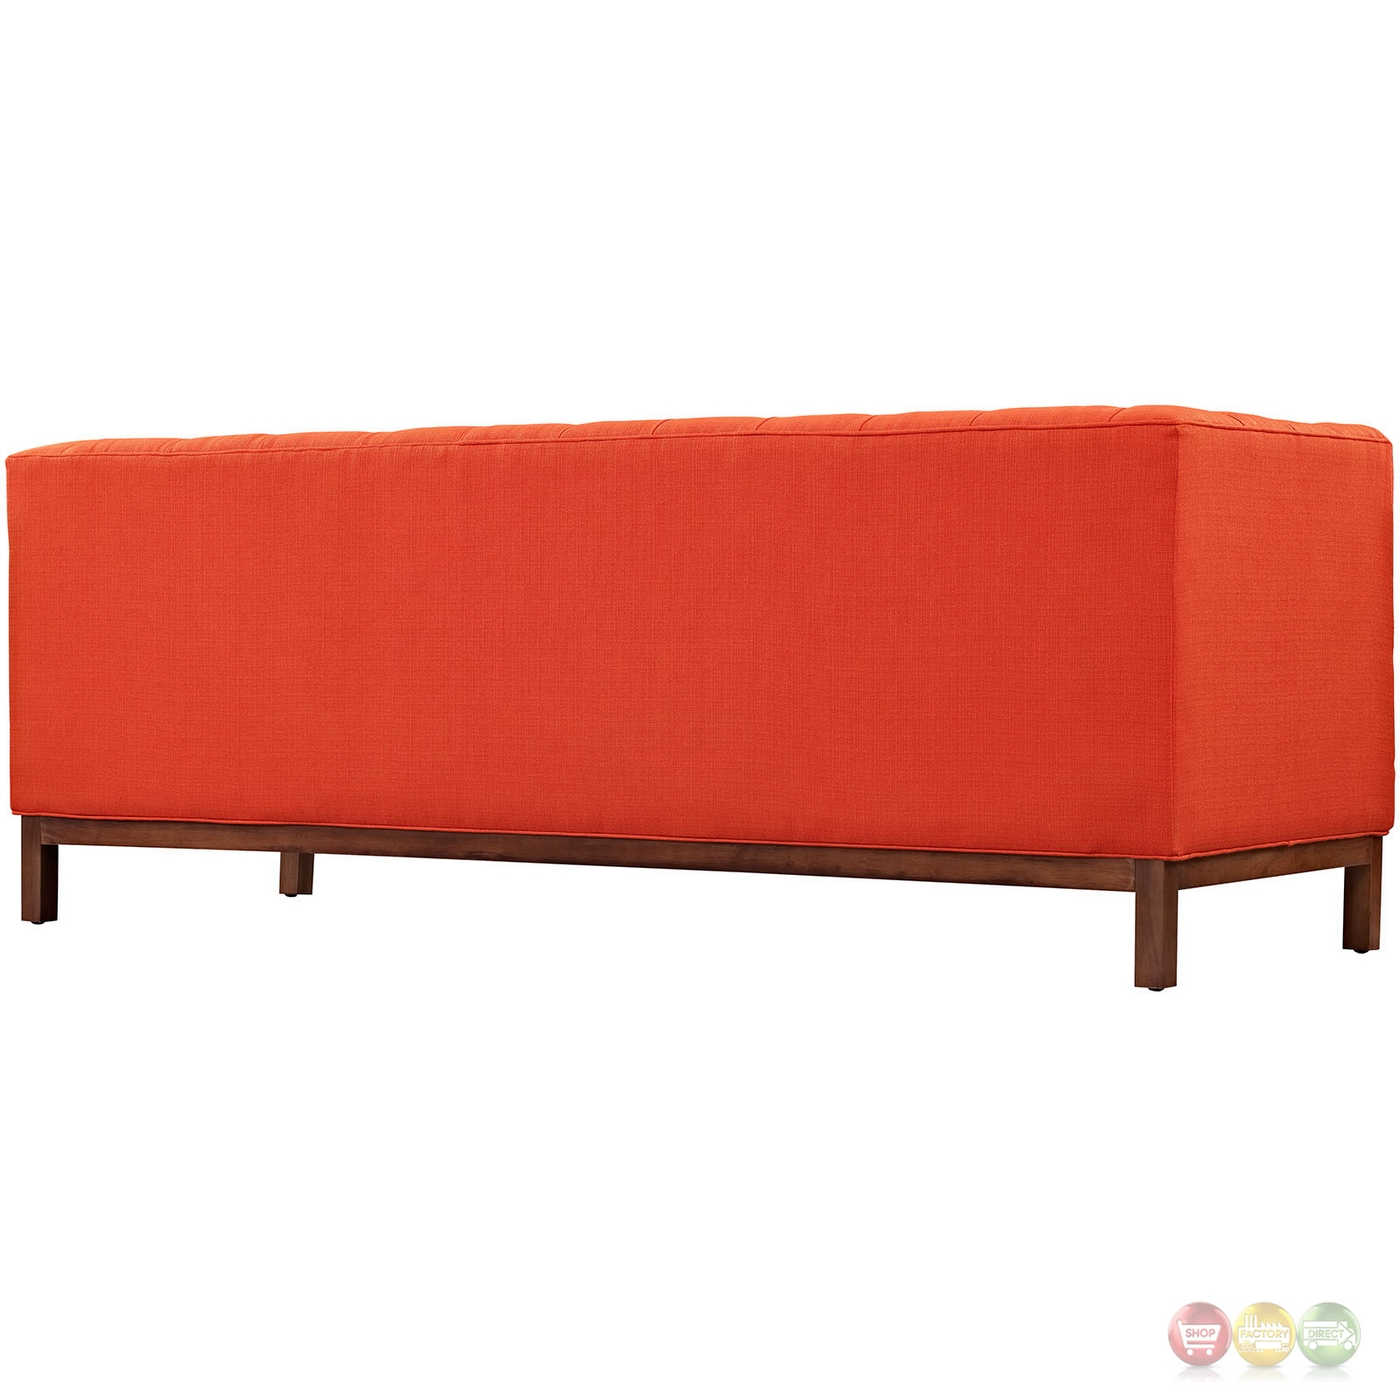 panache sofa set affordable sectional sofas mid century modern 2pc upholstered and armchair